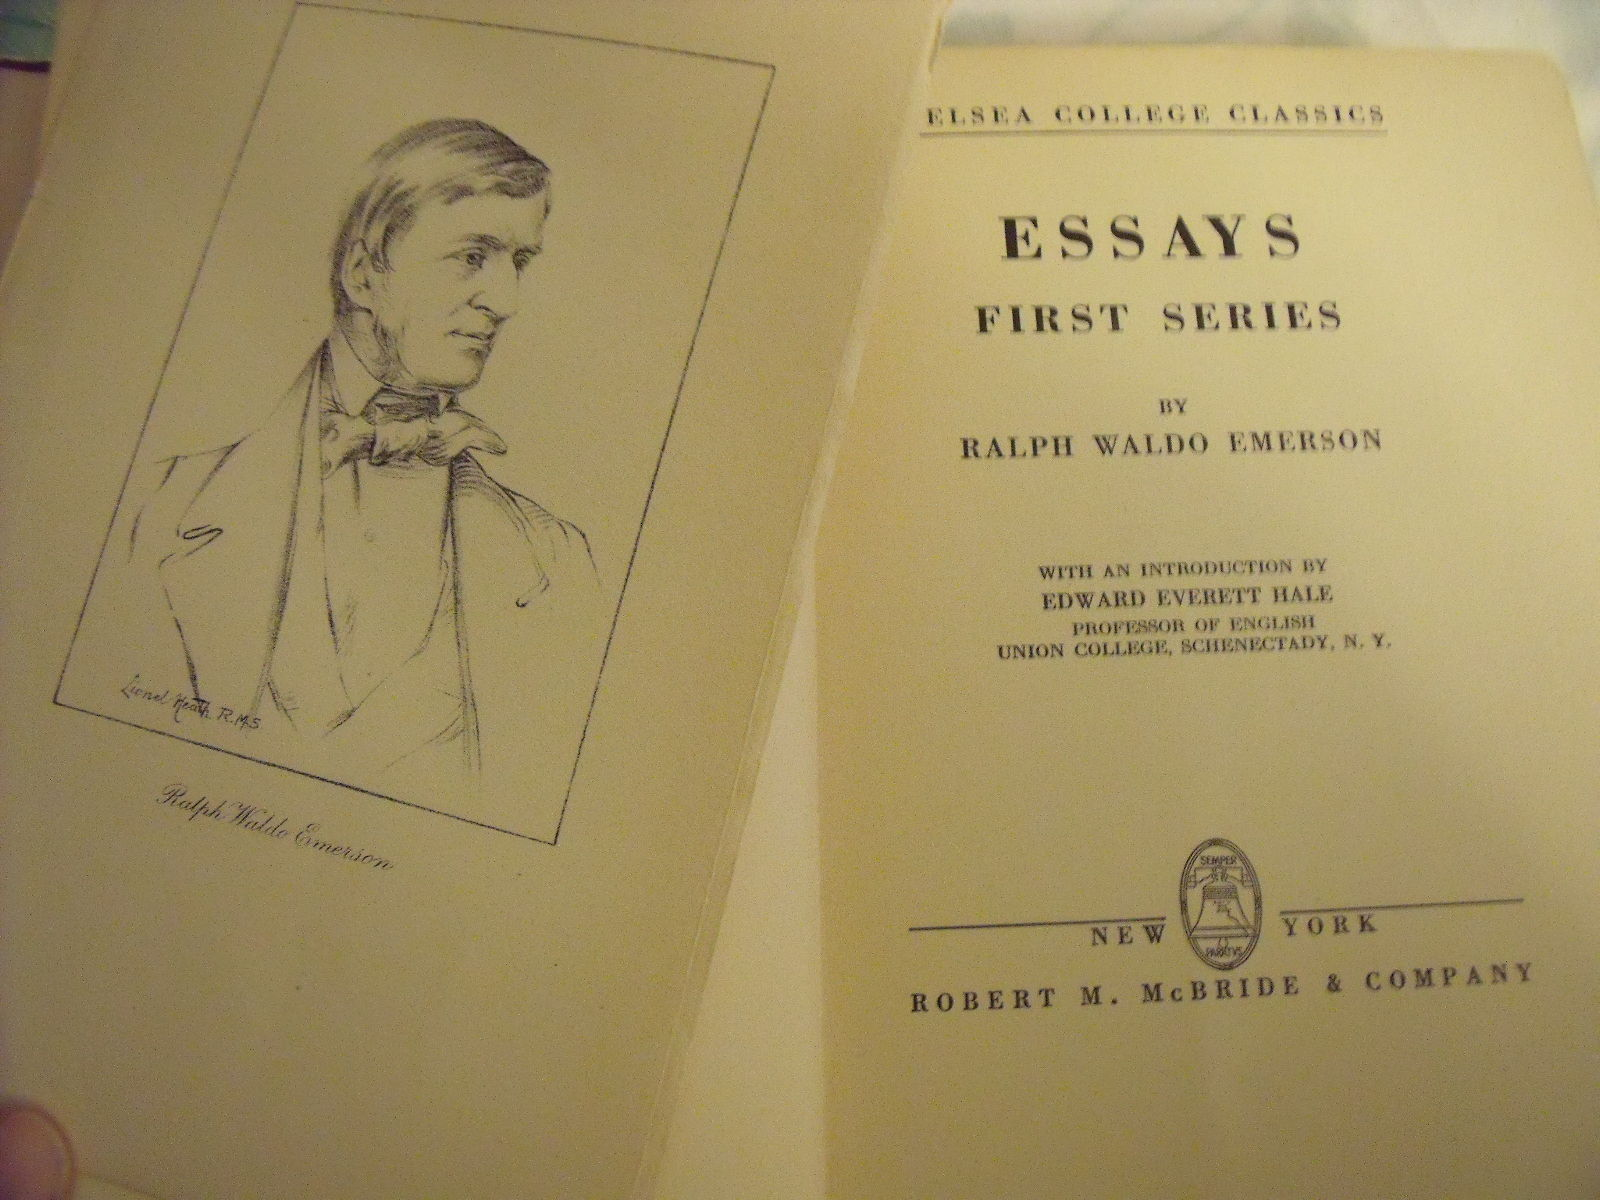 emerson essays rare books The essay on self - reliance by ralph waldo emerson and a great selection of  similar  from: goldstone rare books (llandybie, carms, united kingdom.